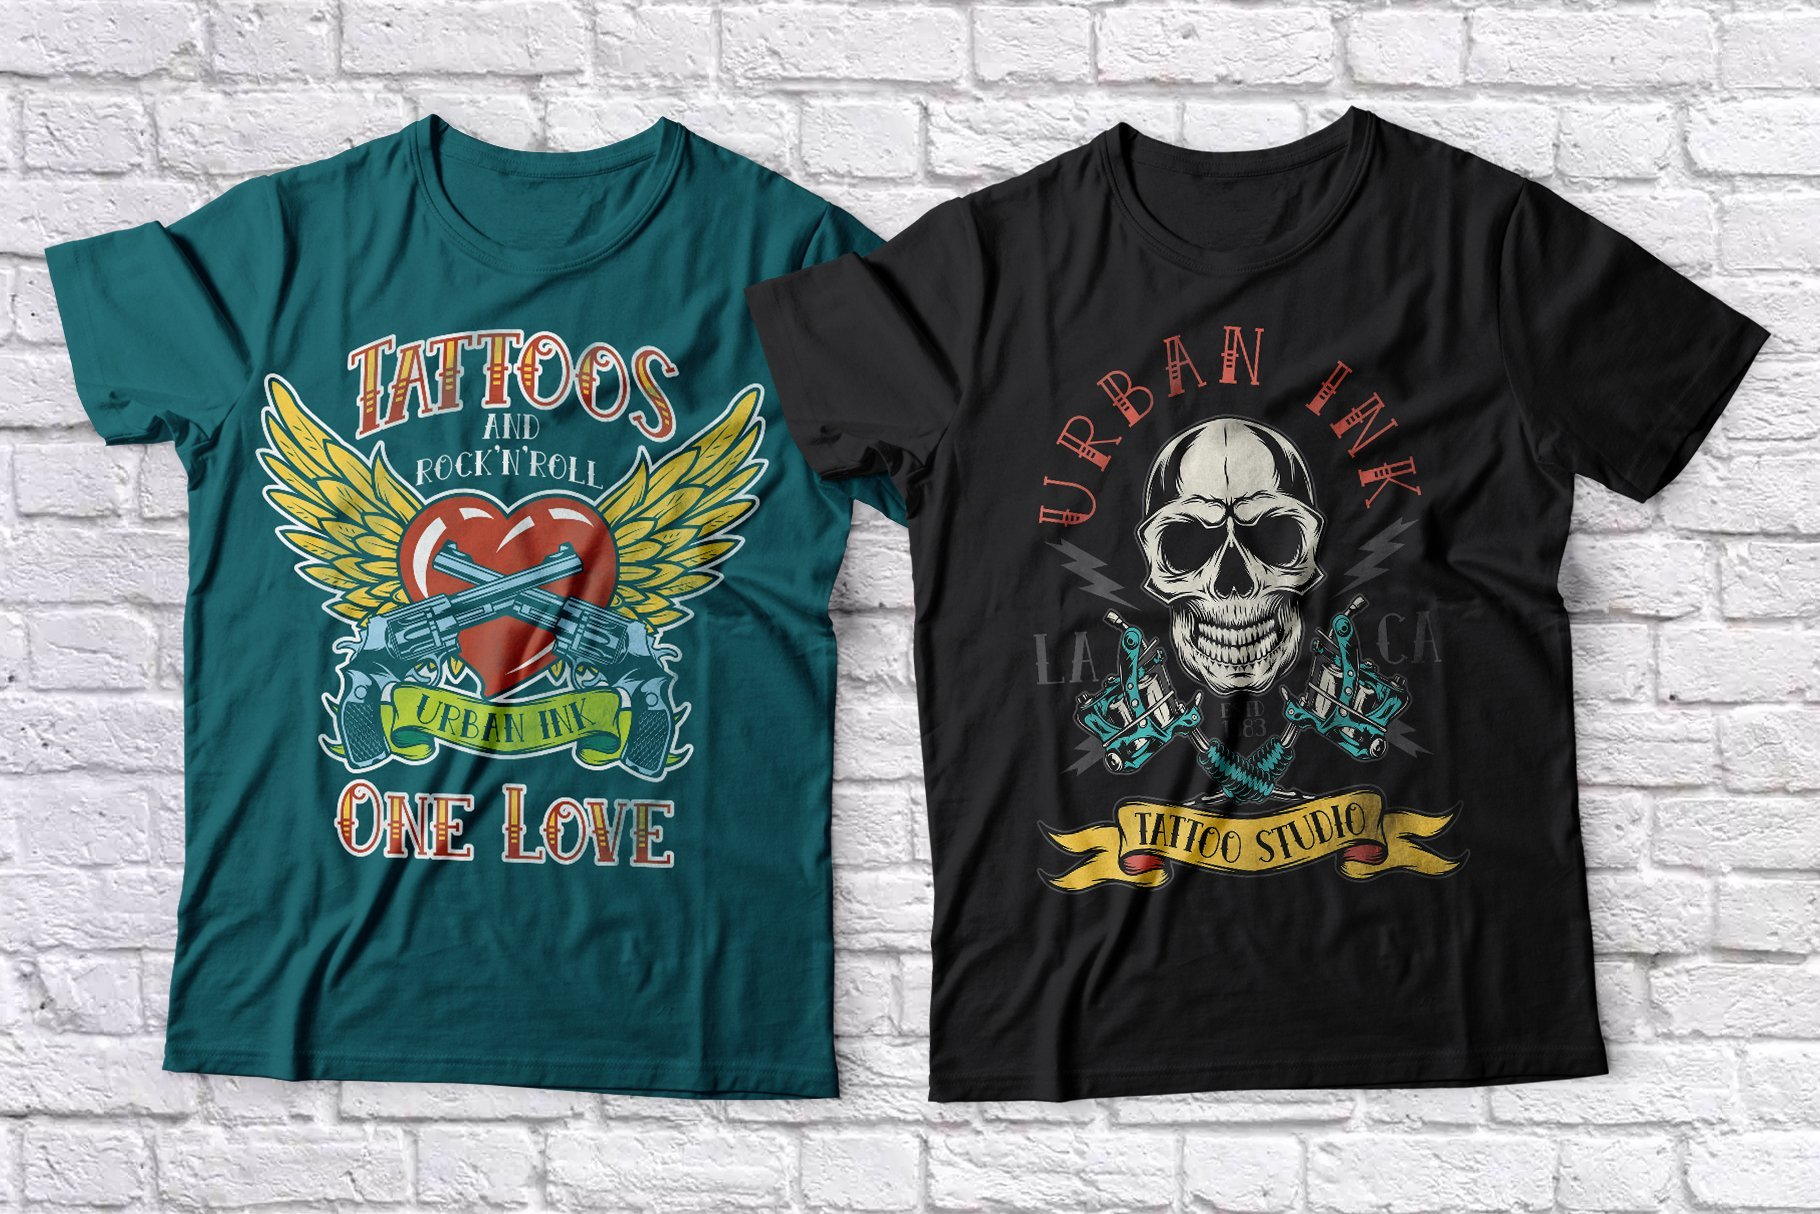 The T-shirts feature a skull and heart with guns.